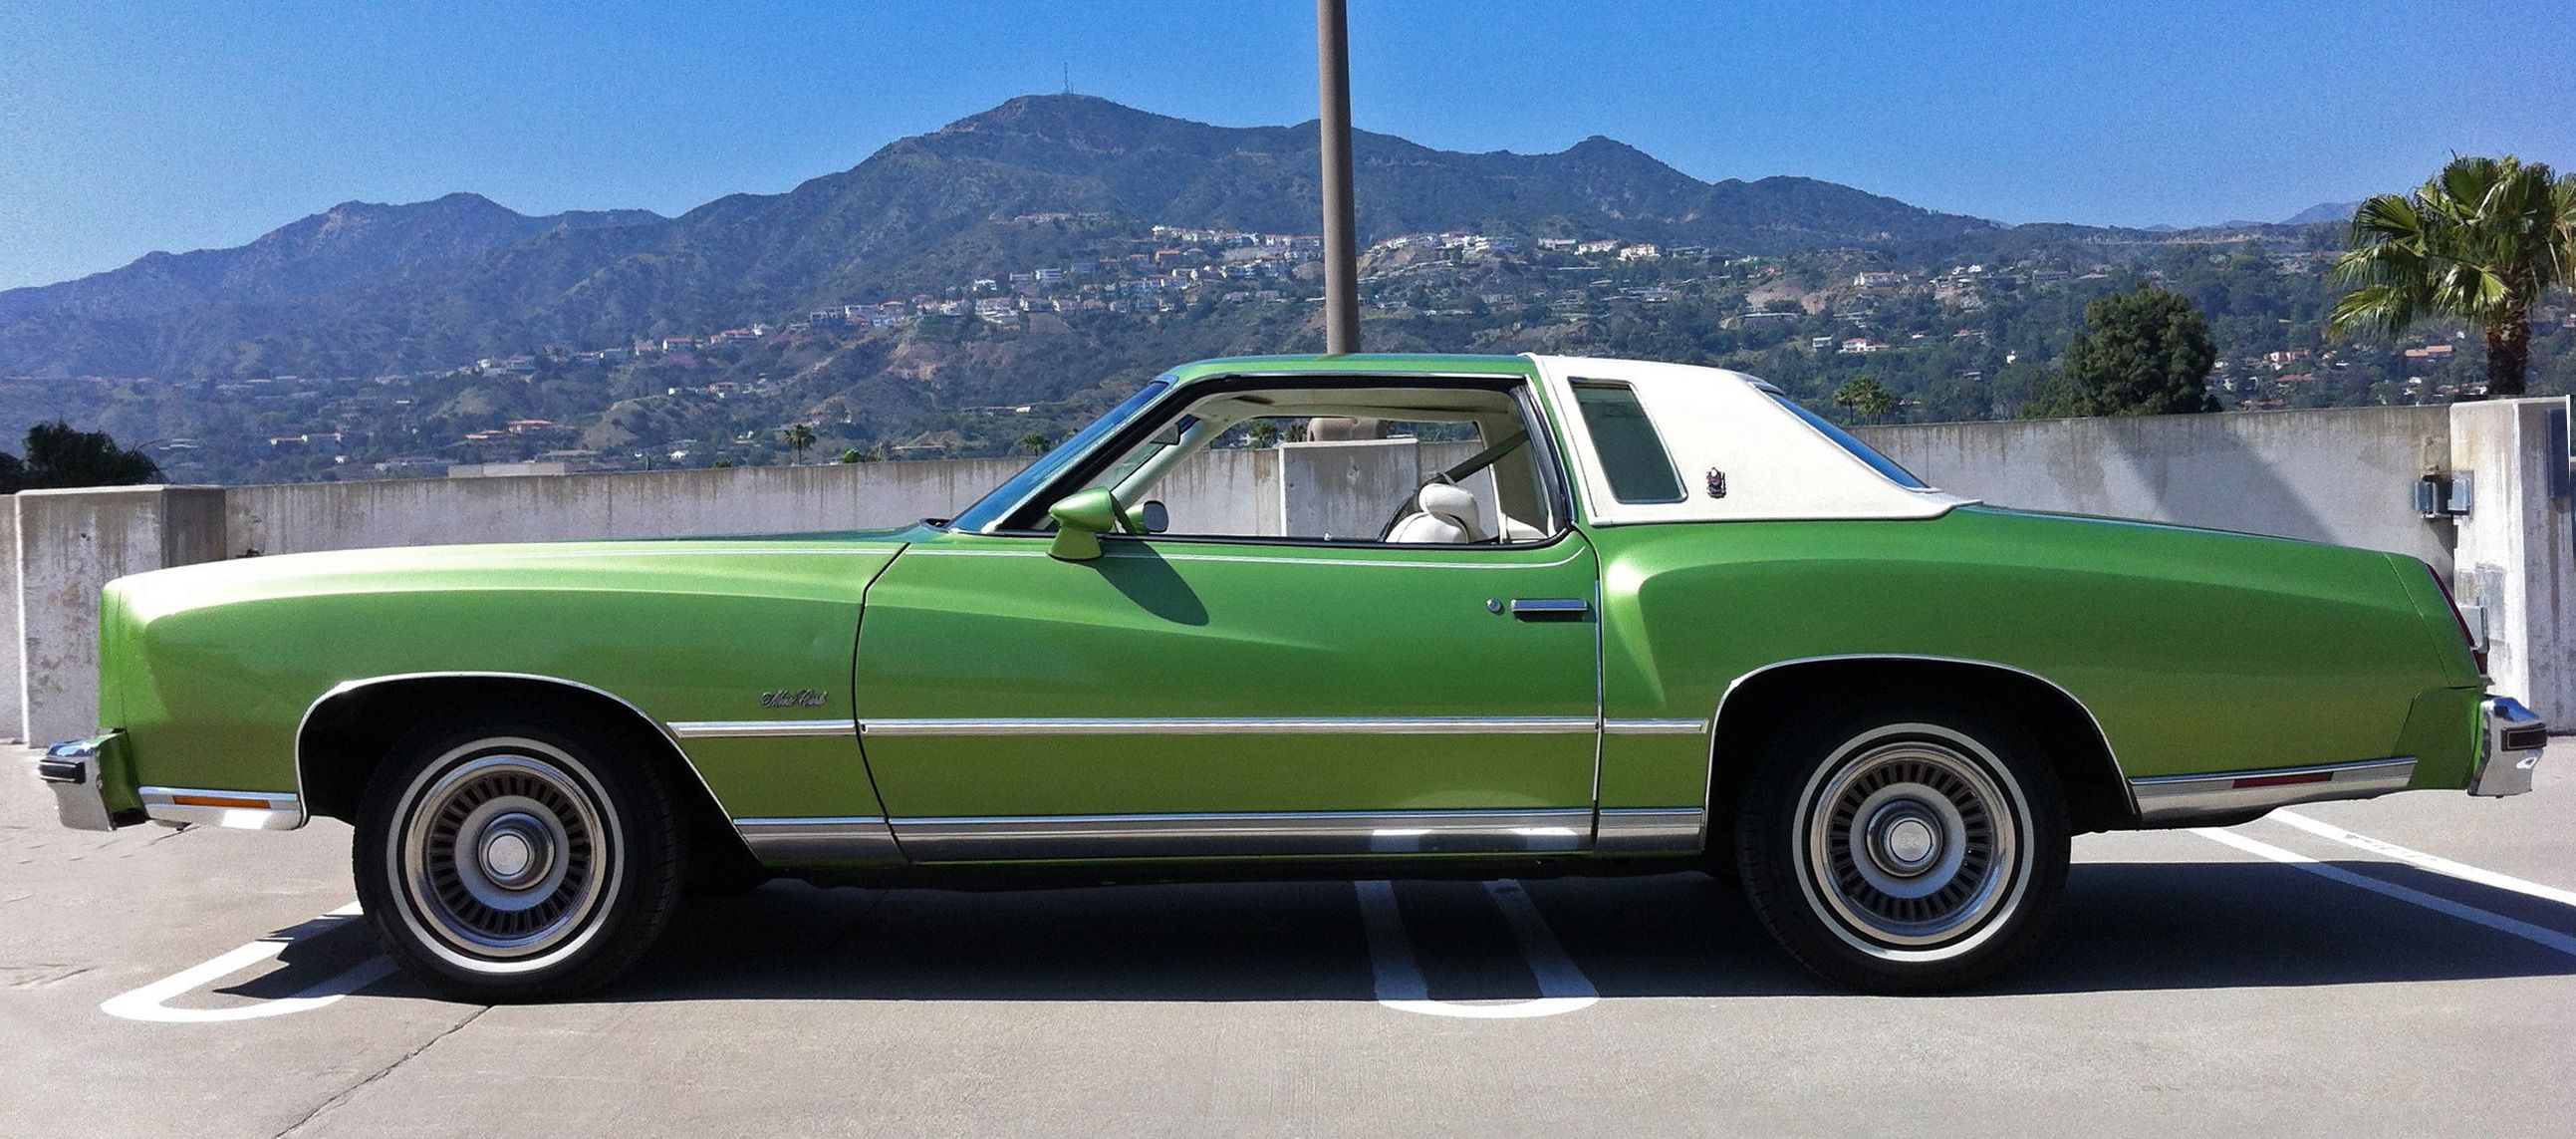 a5c9dbe9eaa480771397e3ef43182deb Take A Look About 1980 Monte Carlo for Sale with Mesmerizing Photos Cars Review